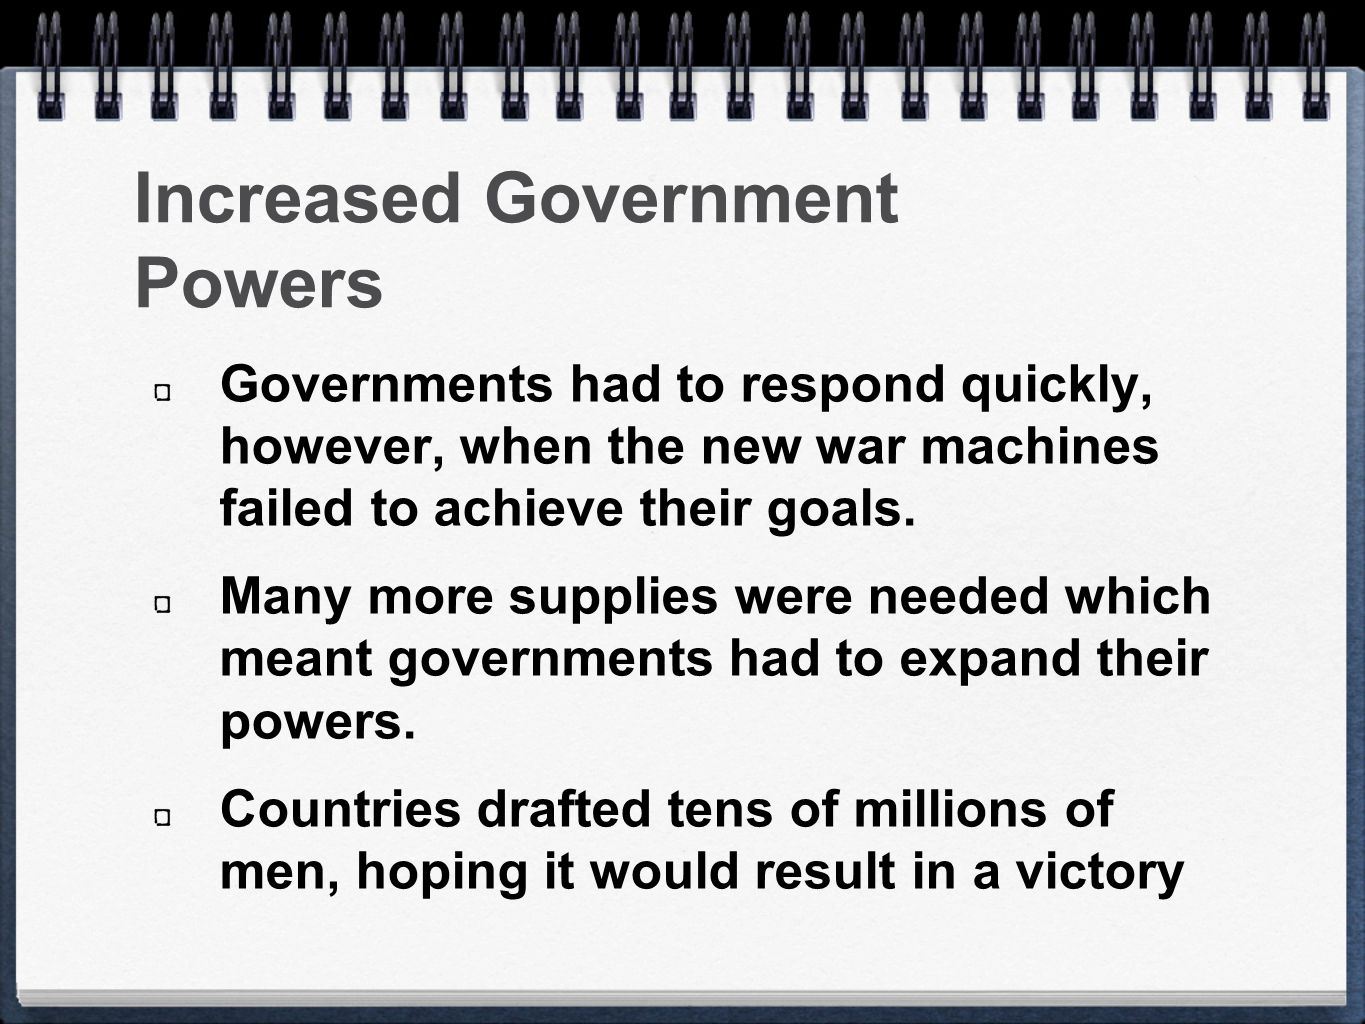 Increased Government Powers